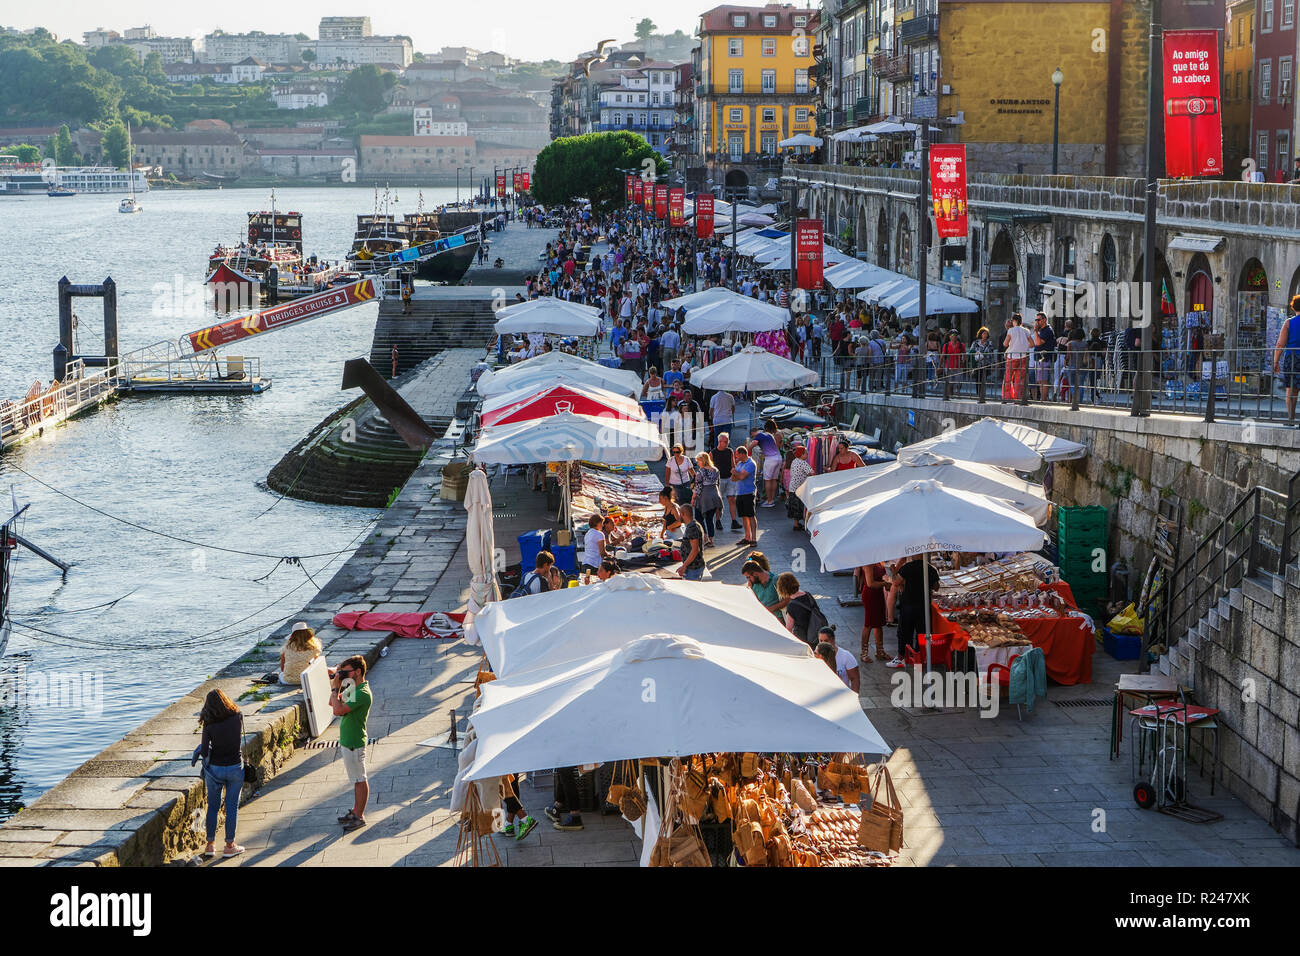 Open air street stalls and markets with cork and gift products on Douro River in Ribeira District, Porto, Portugal, Europe - Stock Image